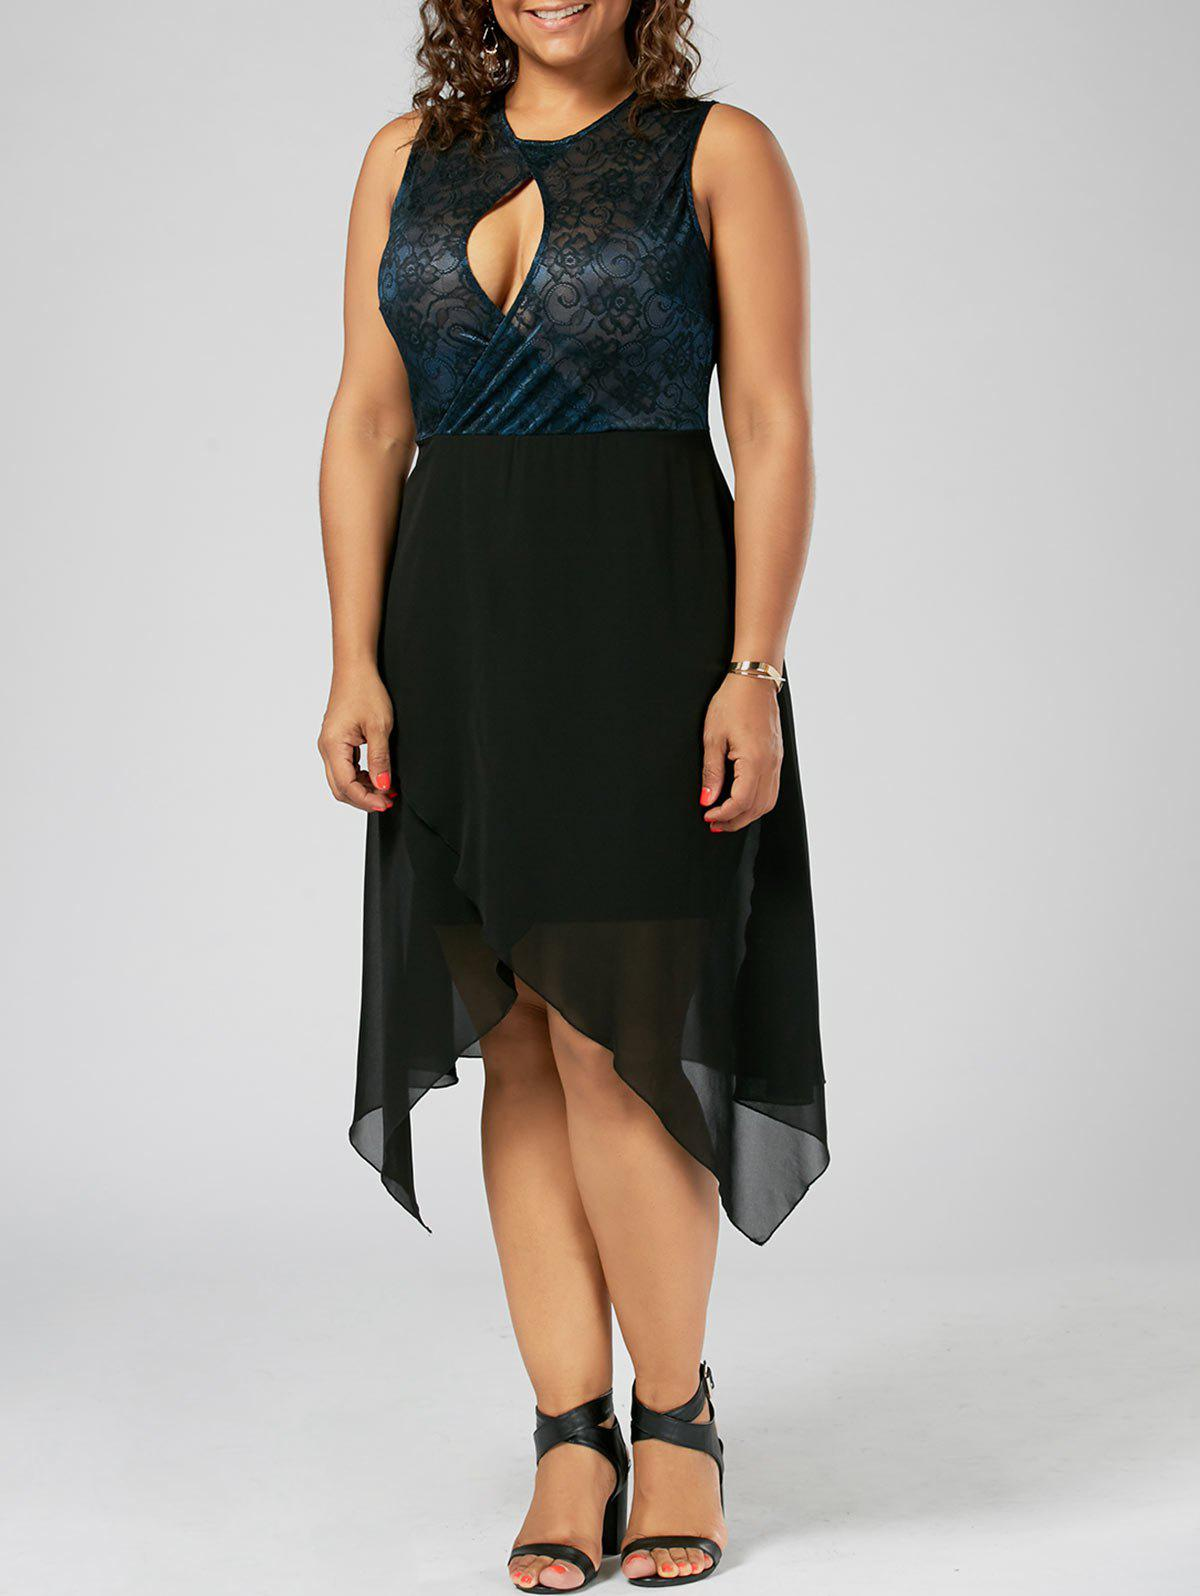 Plus Size Keyhole Neck Overlap Sleeveless DressWOMEN<br><br>Size: 5XL; Color: PURPLISH BLUE; Style: Brief; Material: Polyester,Spandex; Silhouette: A-Line; Dresses Length: Mid-Calf; Neckline: Keyhole Neck; Sleeve Length: Sleeveless; Pattern Type: Floral; With Belt: No; Season: Summer; Weight: 0.3790kg; Package Contents: 1 x Dress;